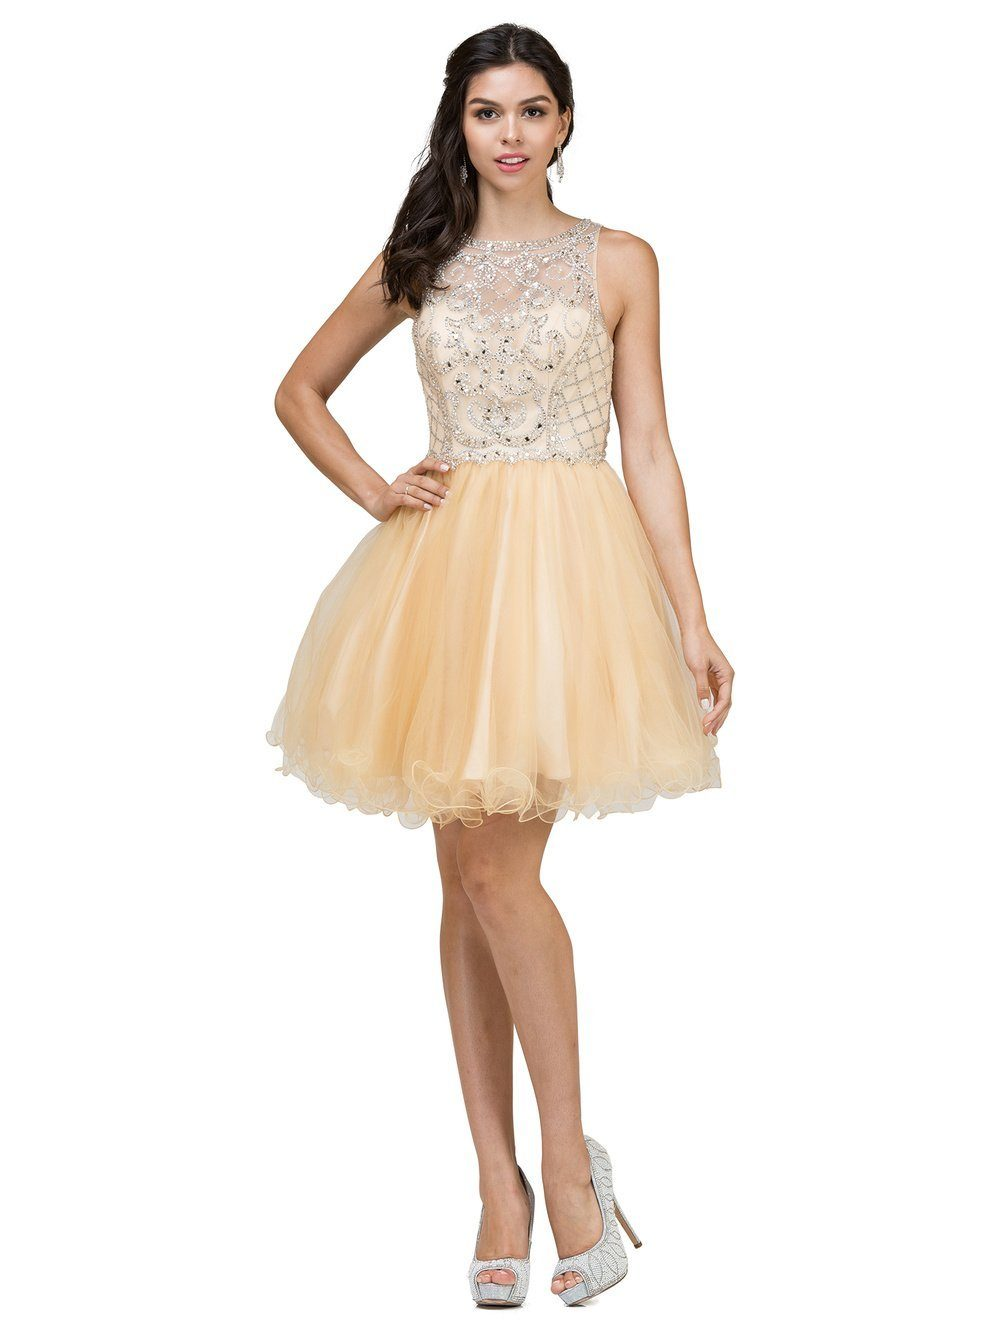 Sparkly Short Prom Dress DQ9995-Simply Fab Dress